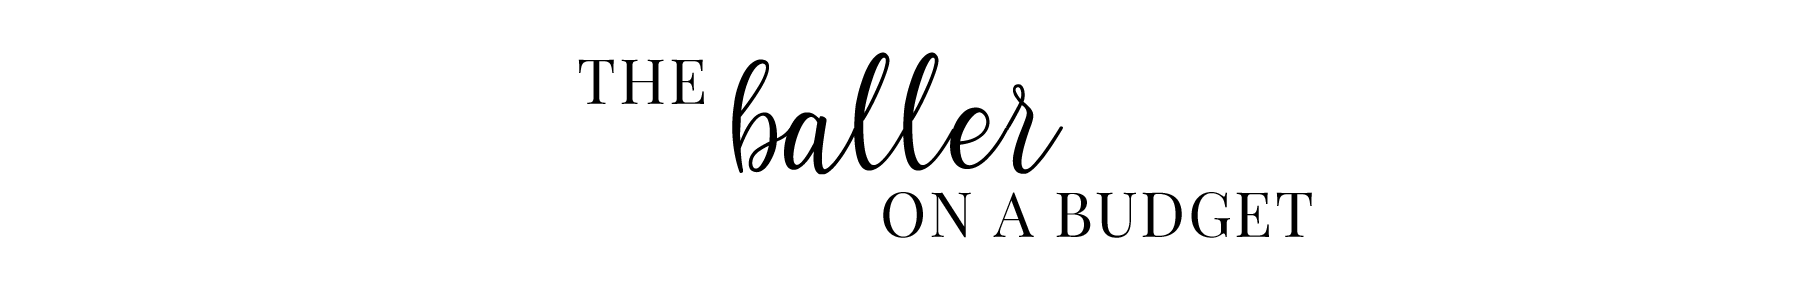 THE BALLER ON A BUDGET – An Affordable Fashion, Beauty & Lifestyle Blog